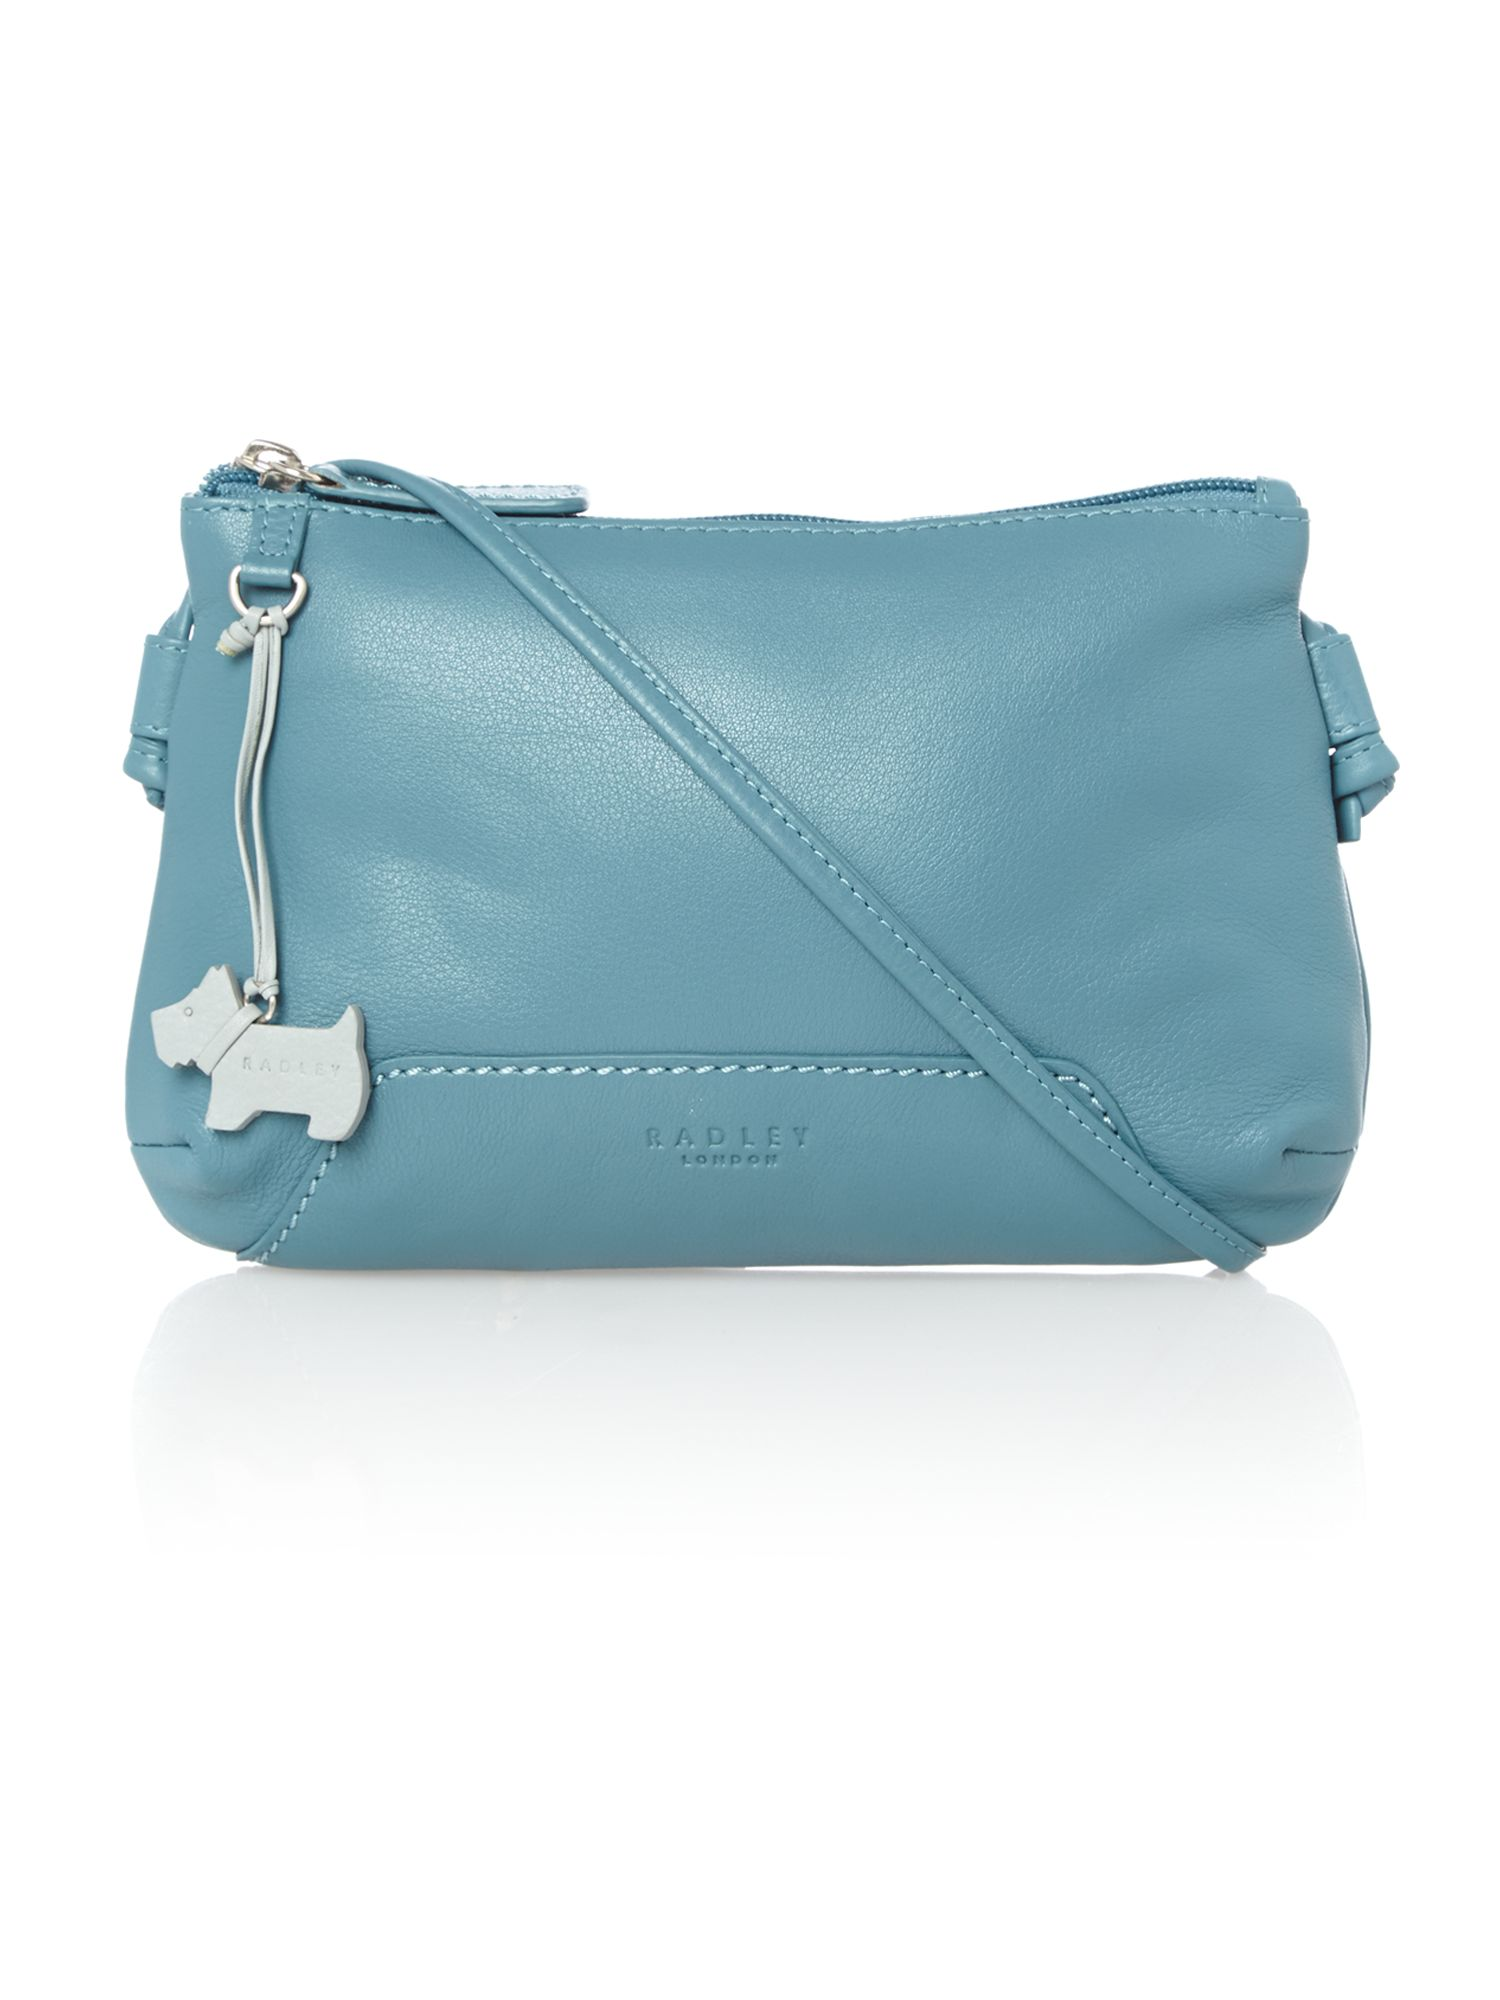 Finsbury small ziptop xbody blue leather bag